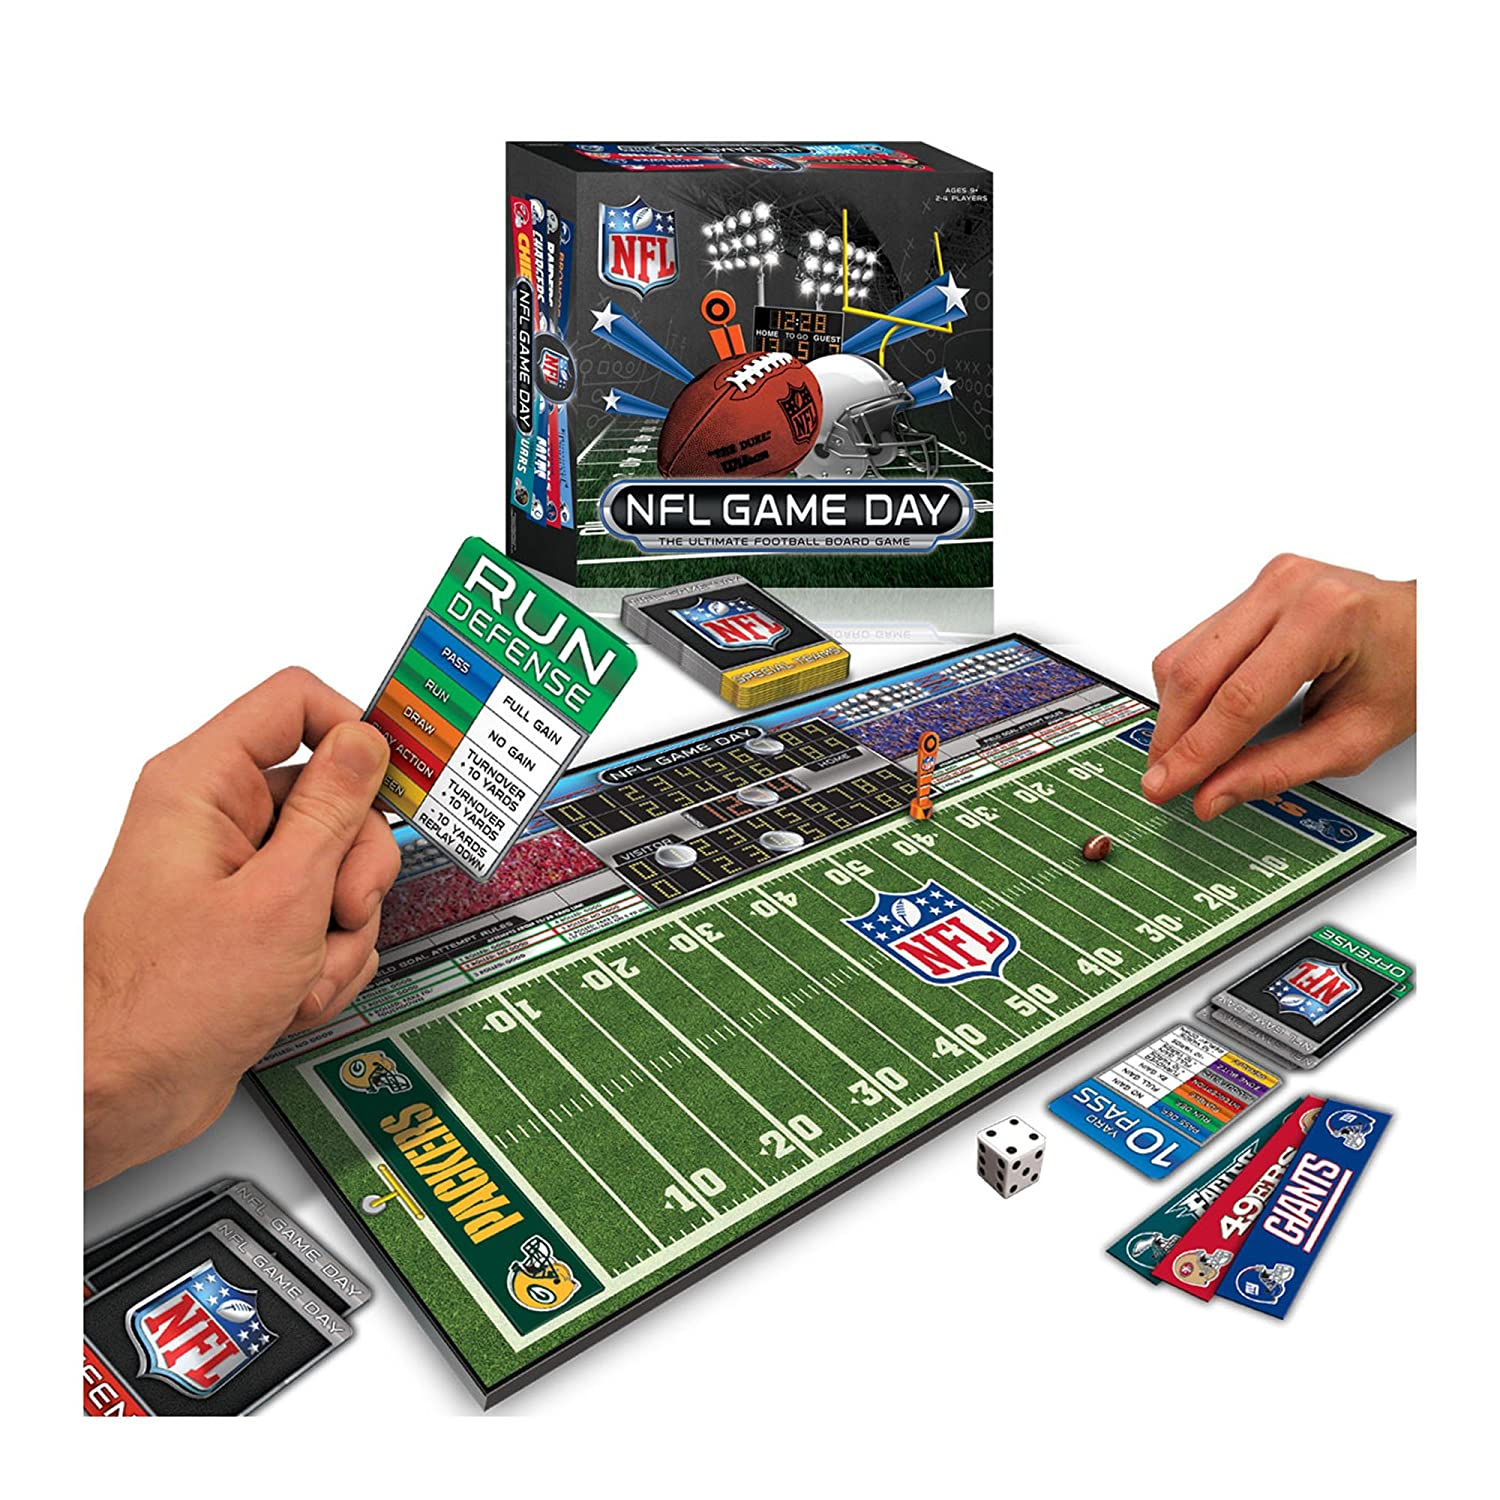 amazoncom nfl game day board game toys games - Nfl Christmas Day Game 2014